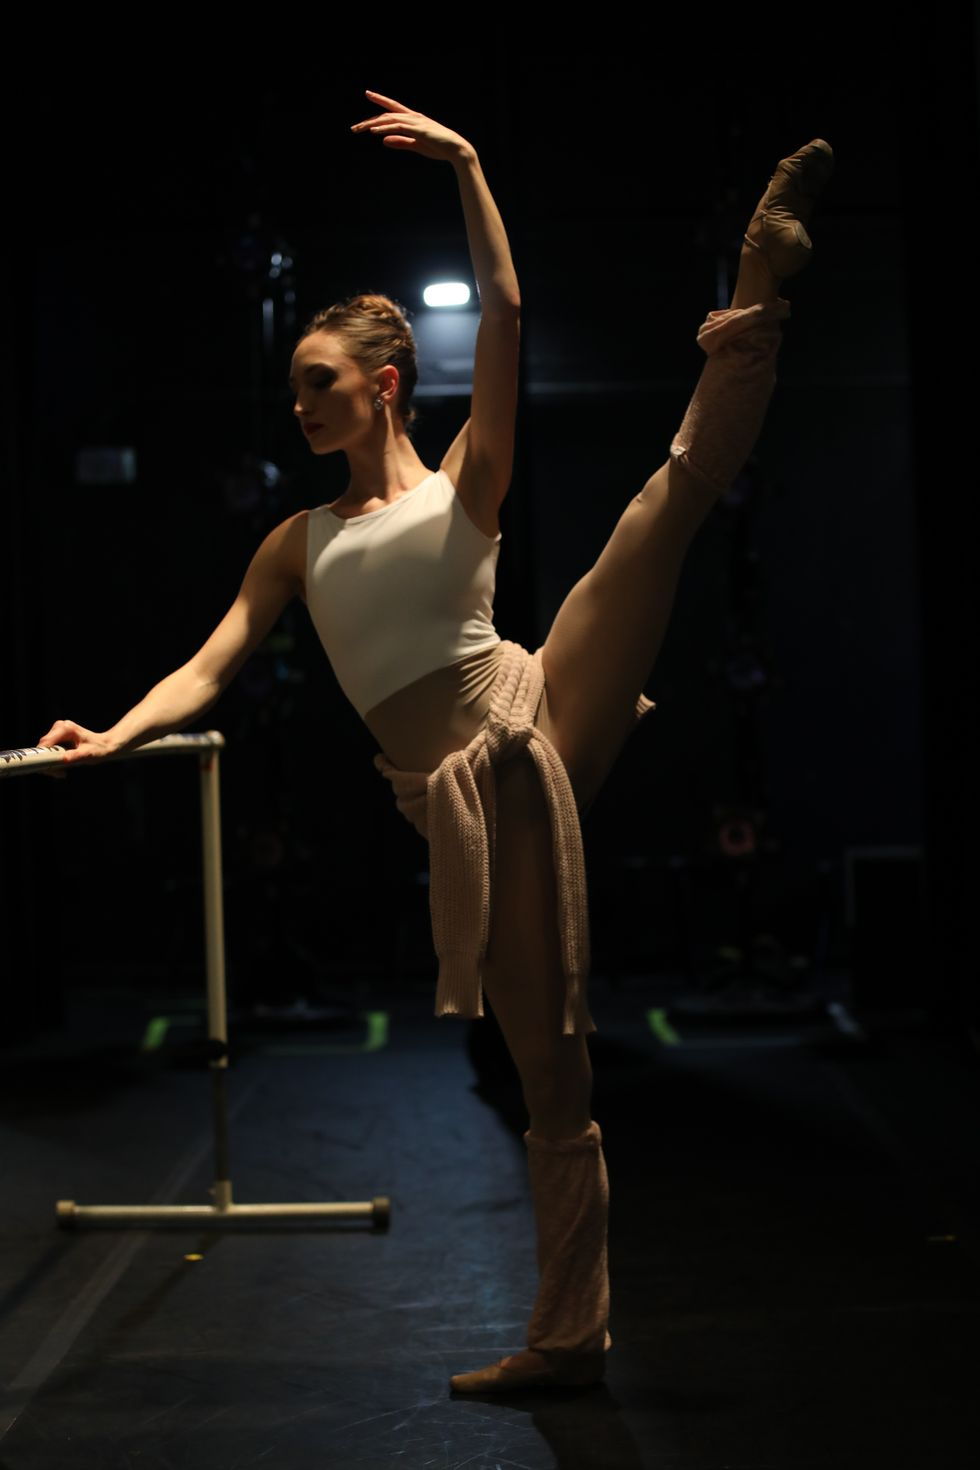 A ballerina warms up at a barre backstage.